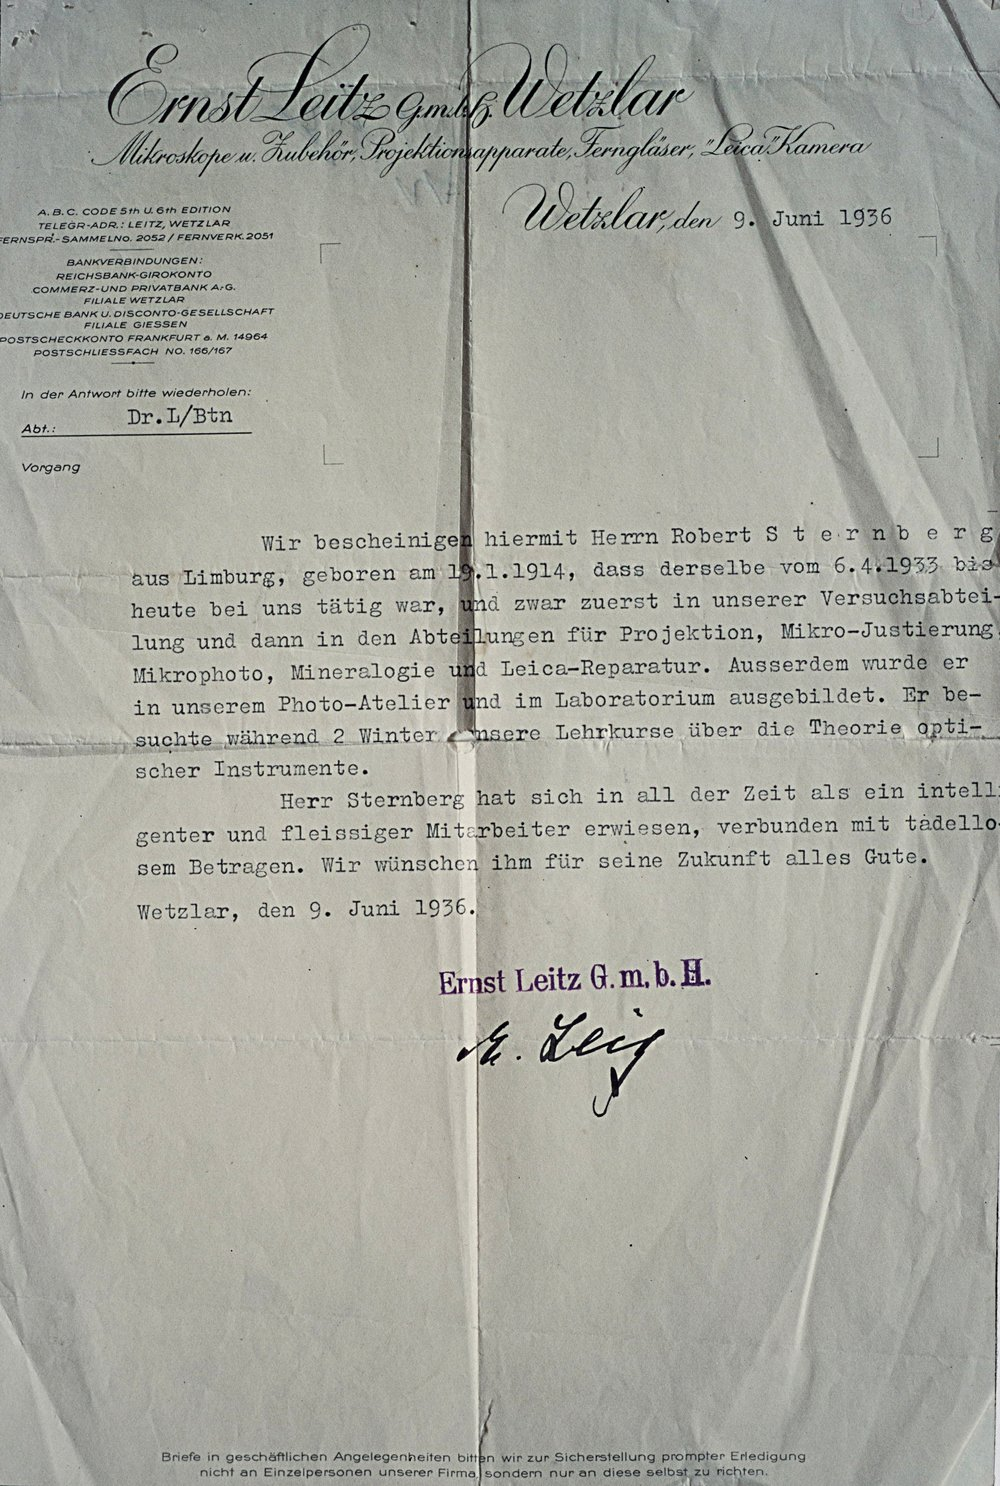 "Robert Sternberg left Wetzlar with the blessing of Dr Ernst Leitz II. Apart from providing an introduction to the Ensign Camera Company in London, Dr. Leitz wrote this to-whom-it-may-concern reference. It reads:  ""We herby confirm that Herr Robert Sternberg, born in Limburg on 19 January 1914, has been employed by us since 6 April 1933, firstly in our Research Department and then in the Projection, Micro-calibration, Micro-photo, Mineralogy and Leica Repair department. In addition, he was trained in our Photographic Studio and in the Laboratory. He attended two winter training courses on the theory of optical instruments.  ""Throughout this time Herr Sternberg has shown himself to be an intelligent and industrious employee, and has conducted himself impeccably. We wish him every success in the future."""